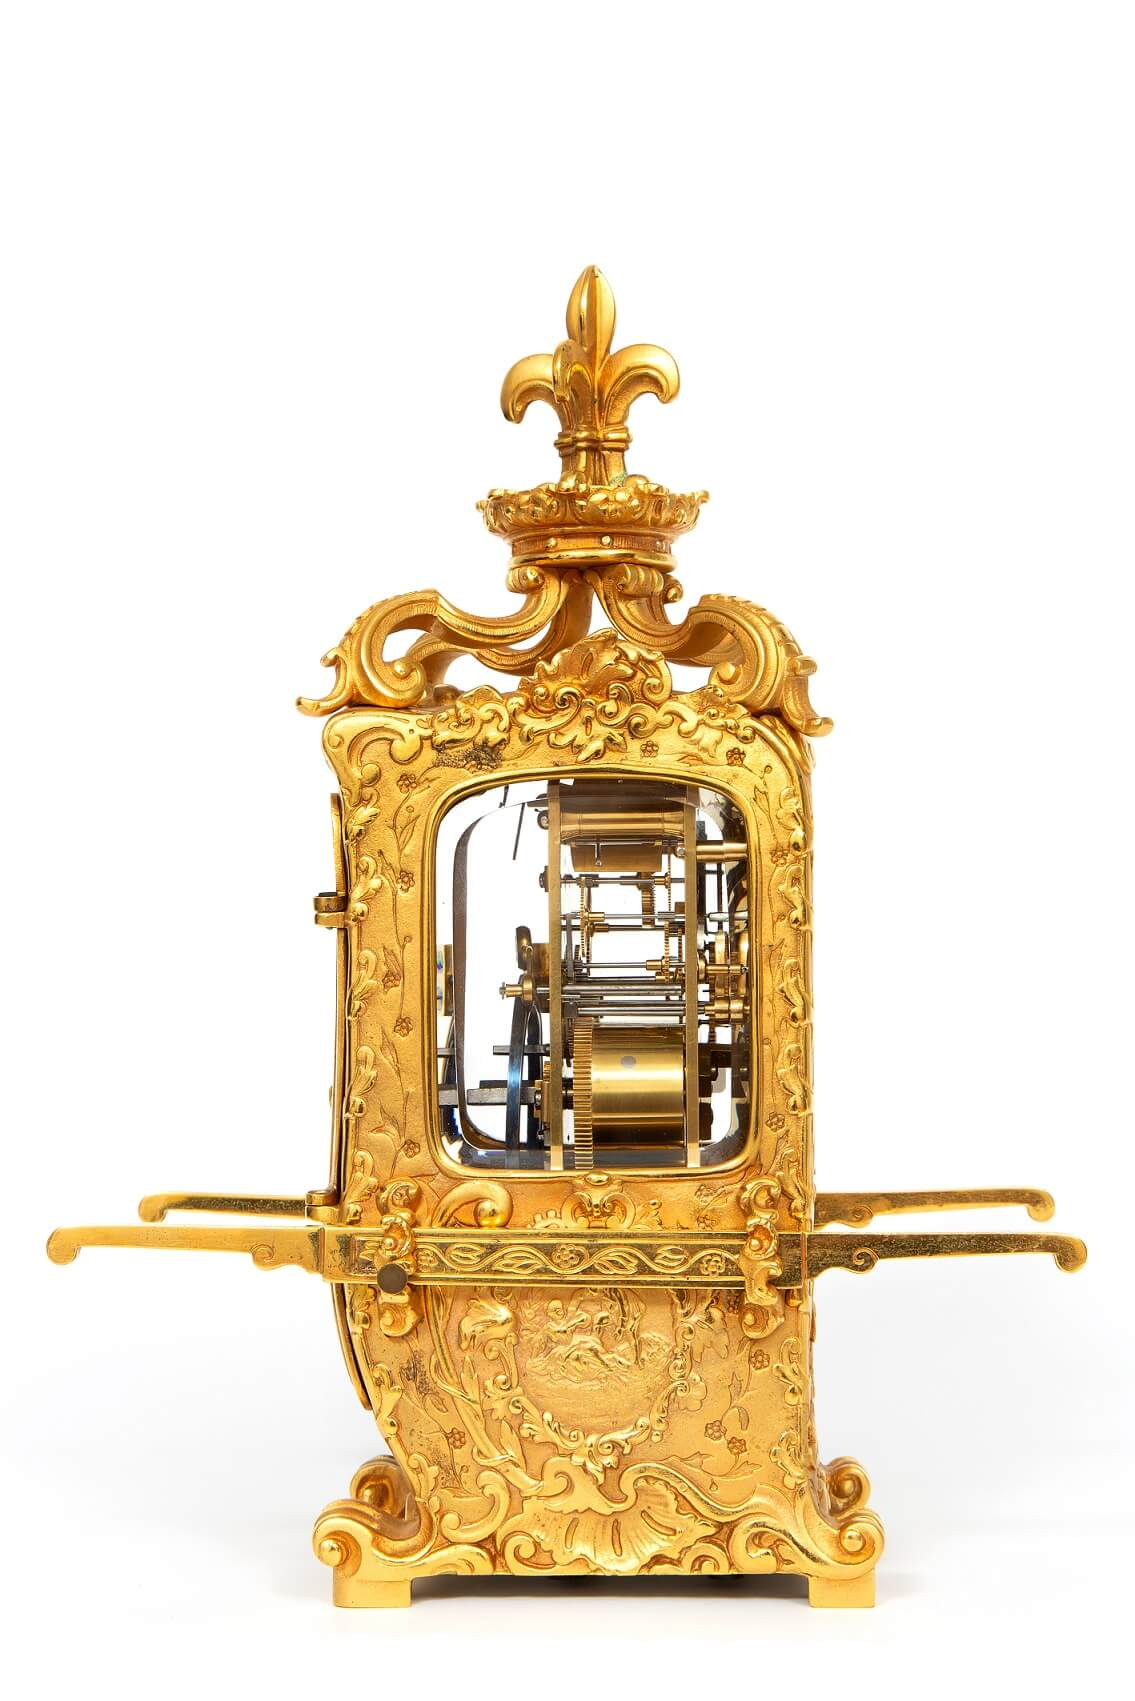 French-rococo-gilt-brass-sedan-carriage-antique-clock-striking-3